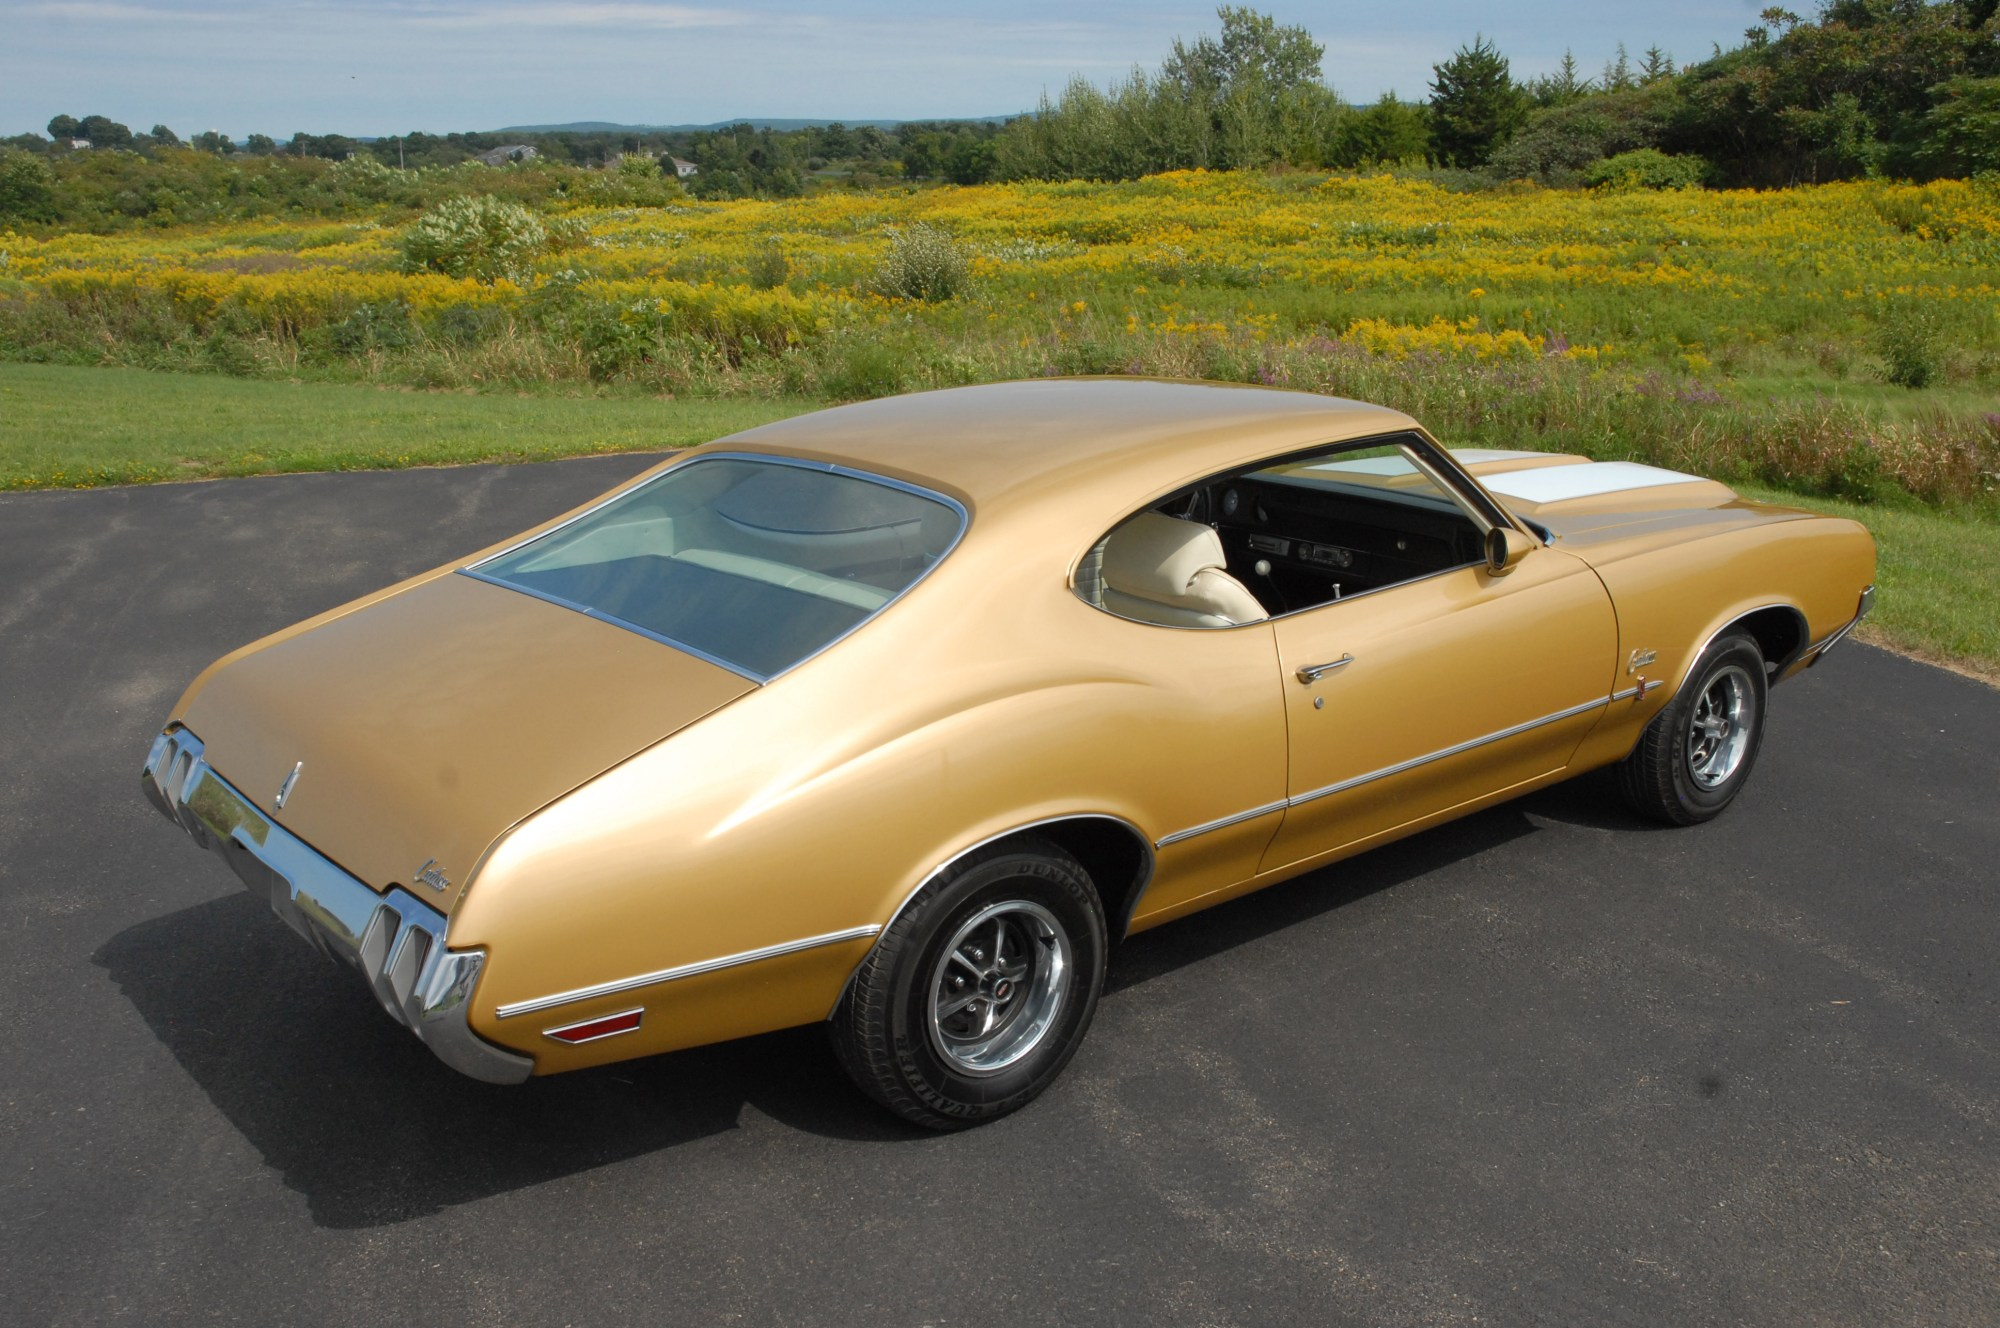 hight resolution of weird options set this 1970 oldsmobile cutlass s apart from the rest hot rod network